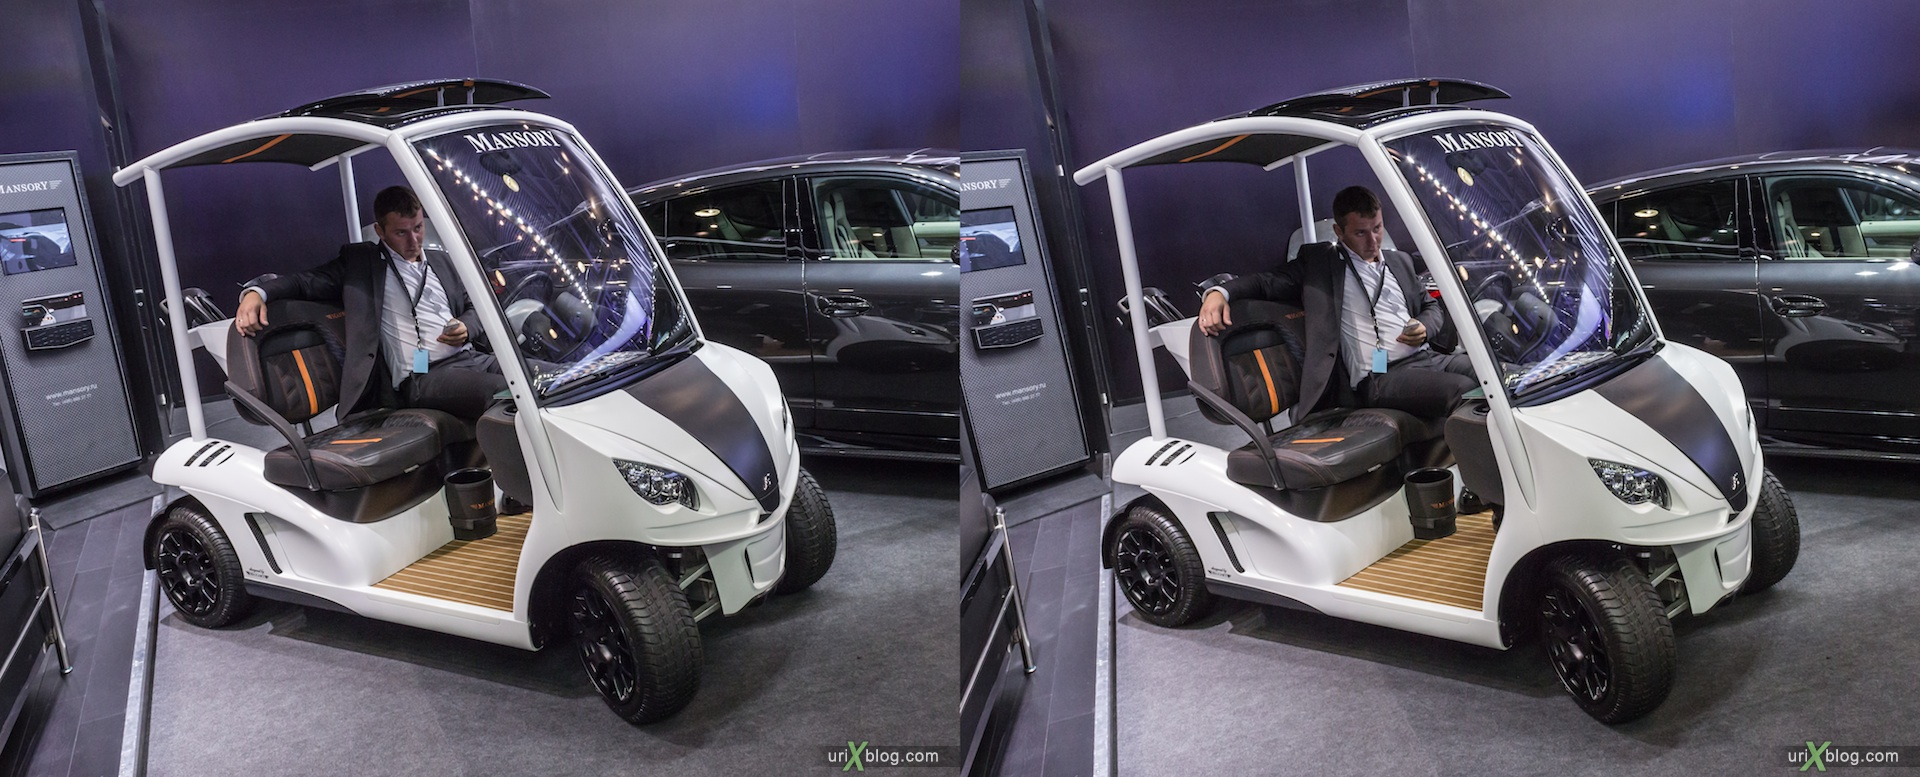 2012, Mansory, Moscow International Automobile Salon, auto show, 3D, stereo pair, cross-eyed, crossview